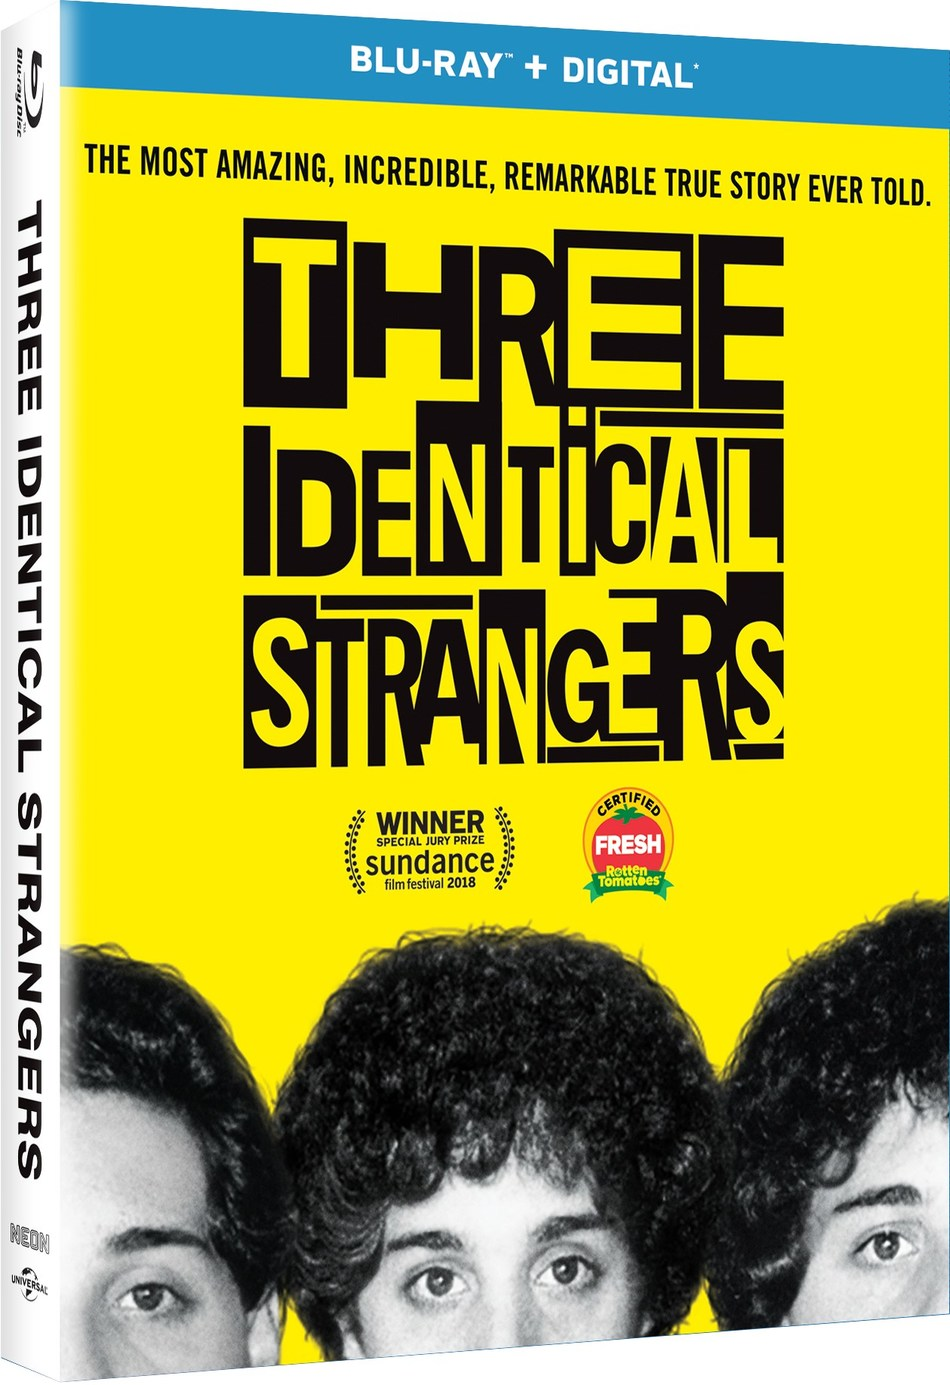 From Universal Pictures Home Entertainment: Three Identical Strangers